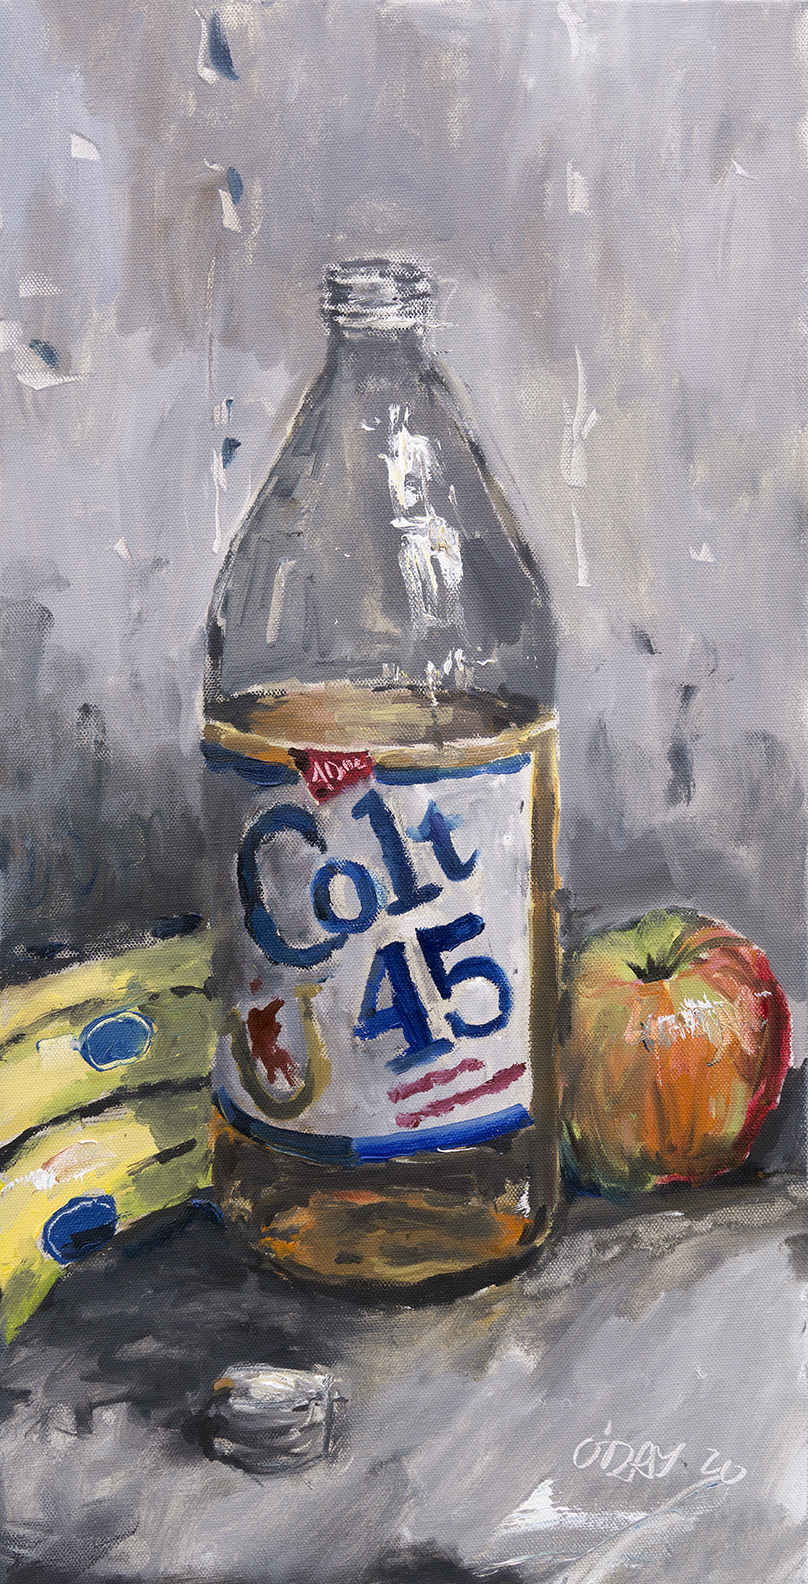 """Colt 45, oil on canvas, 30x15"""", 2020 SOLD"""